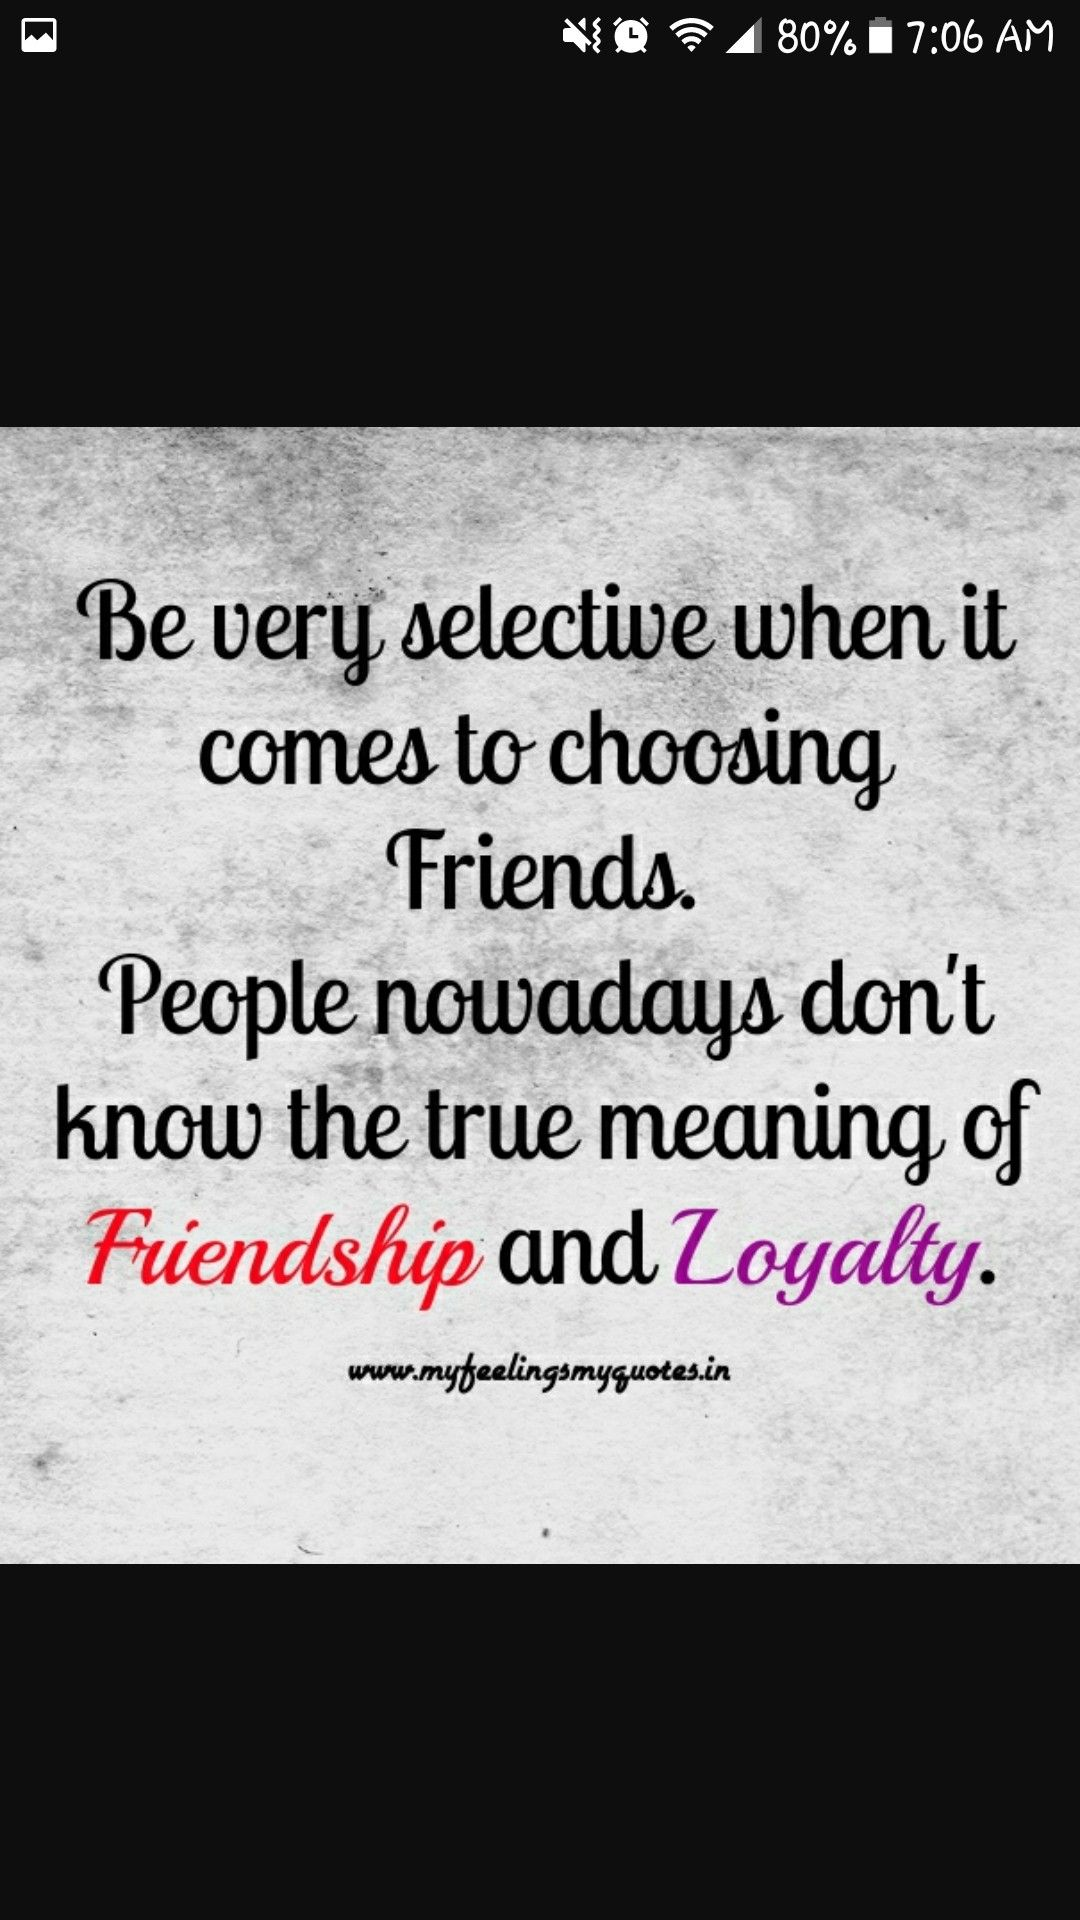 Broken Friendship, Quote Friendship, Family Rules, Spiritual Quotes, Move  Forward, Meaningful Quotes, Bobs, Poetry, Relationships